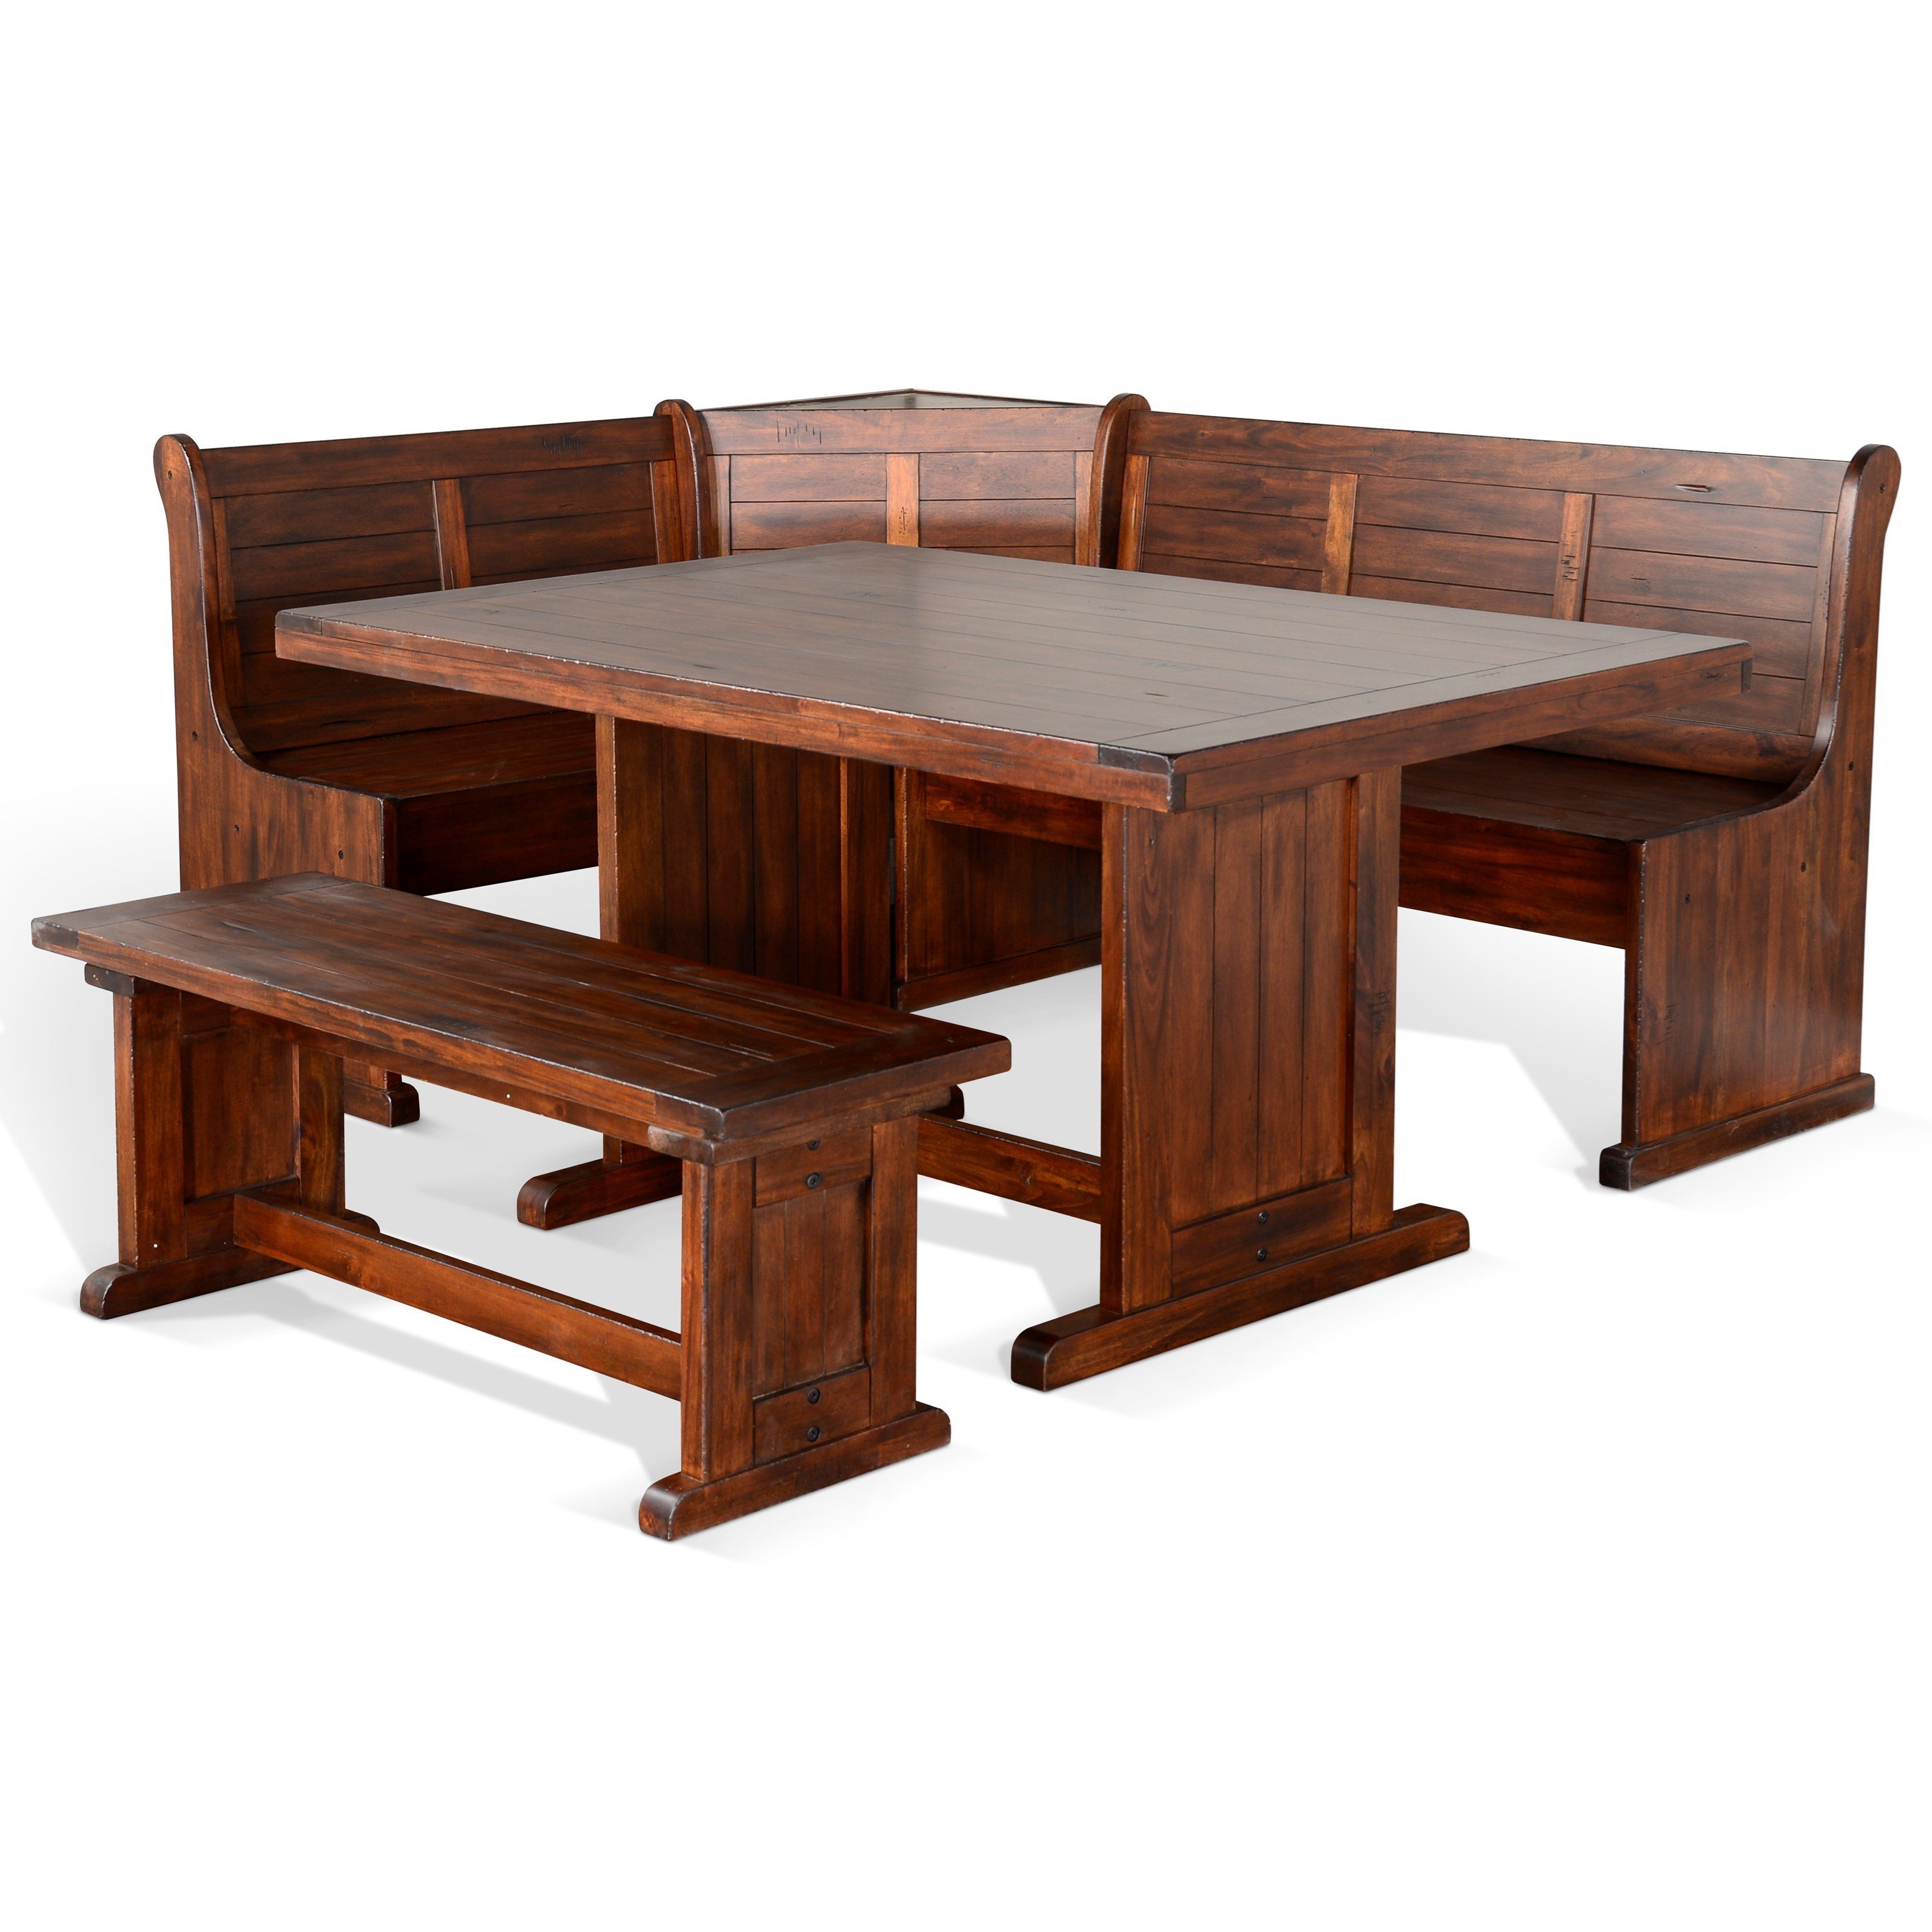 Picture of: Sunny Designs Bayside Breakfast Nook Set With Bench Conlin S Furniture Table Chair Set With Bench